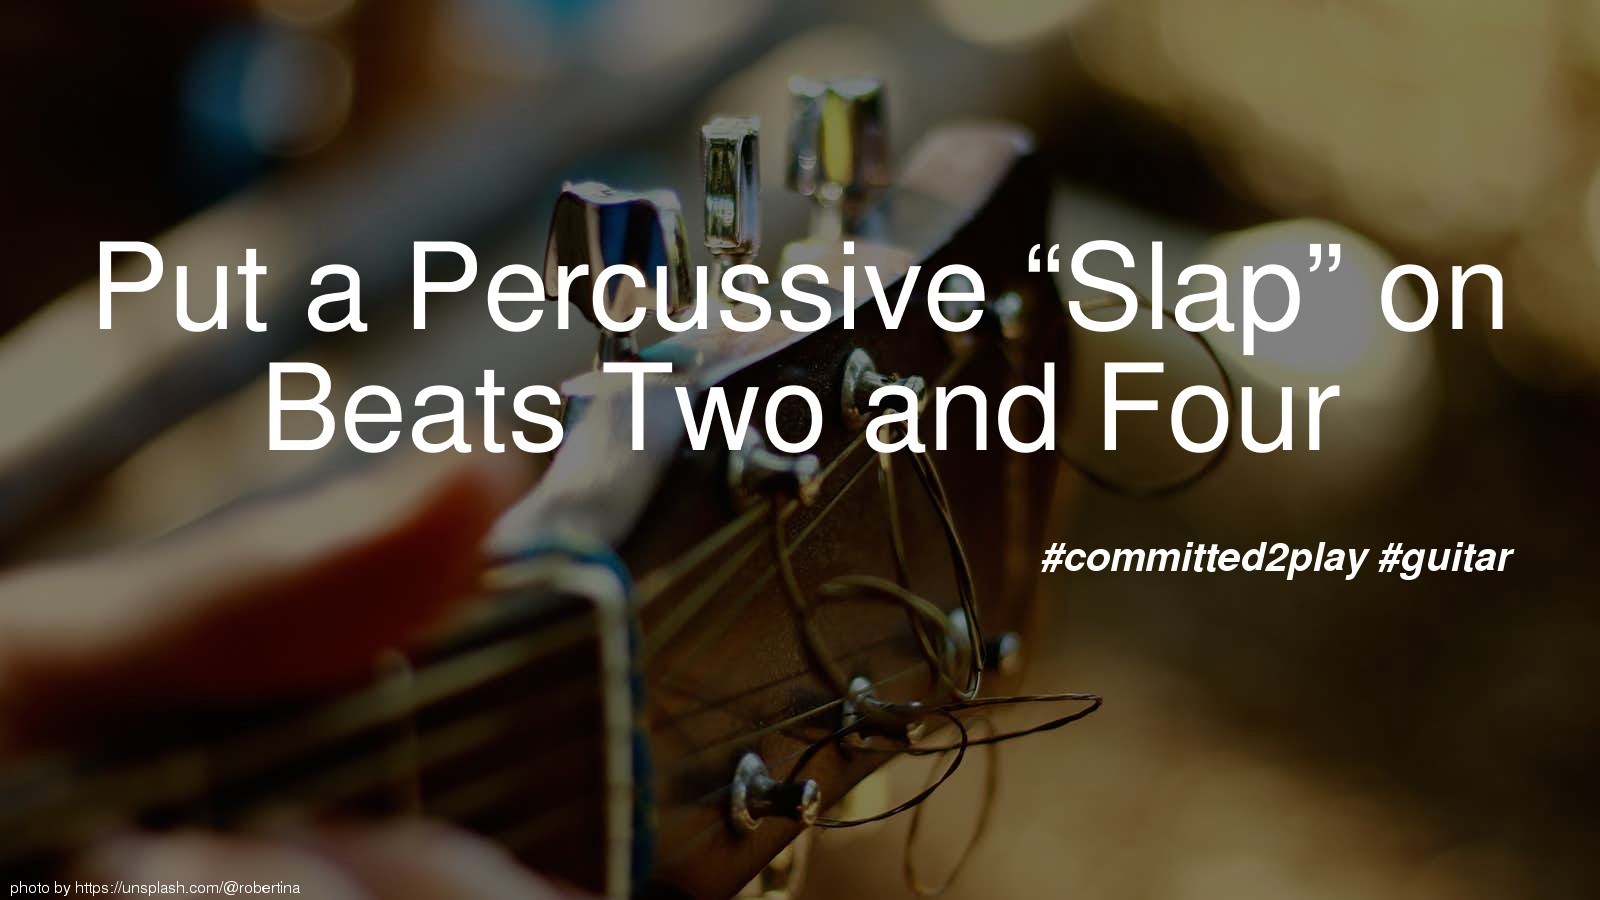 "Put a Percussive ""Slap"" on Beats Two and Four"